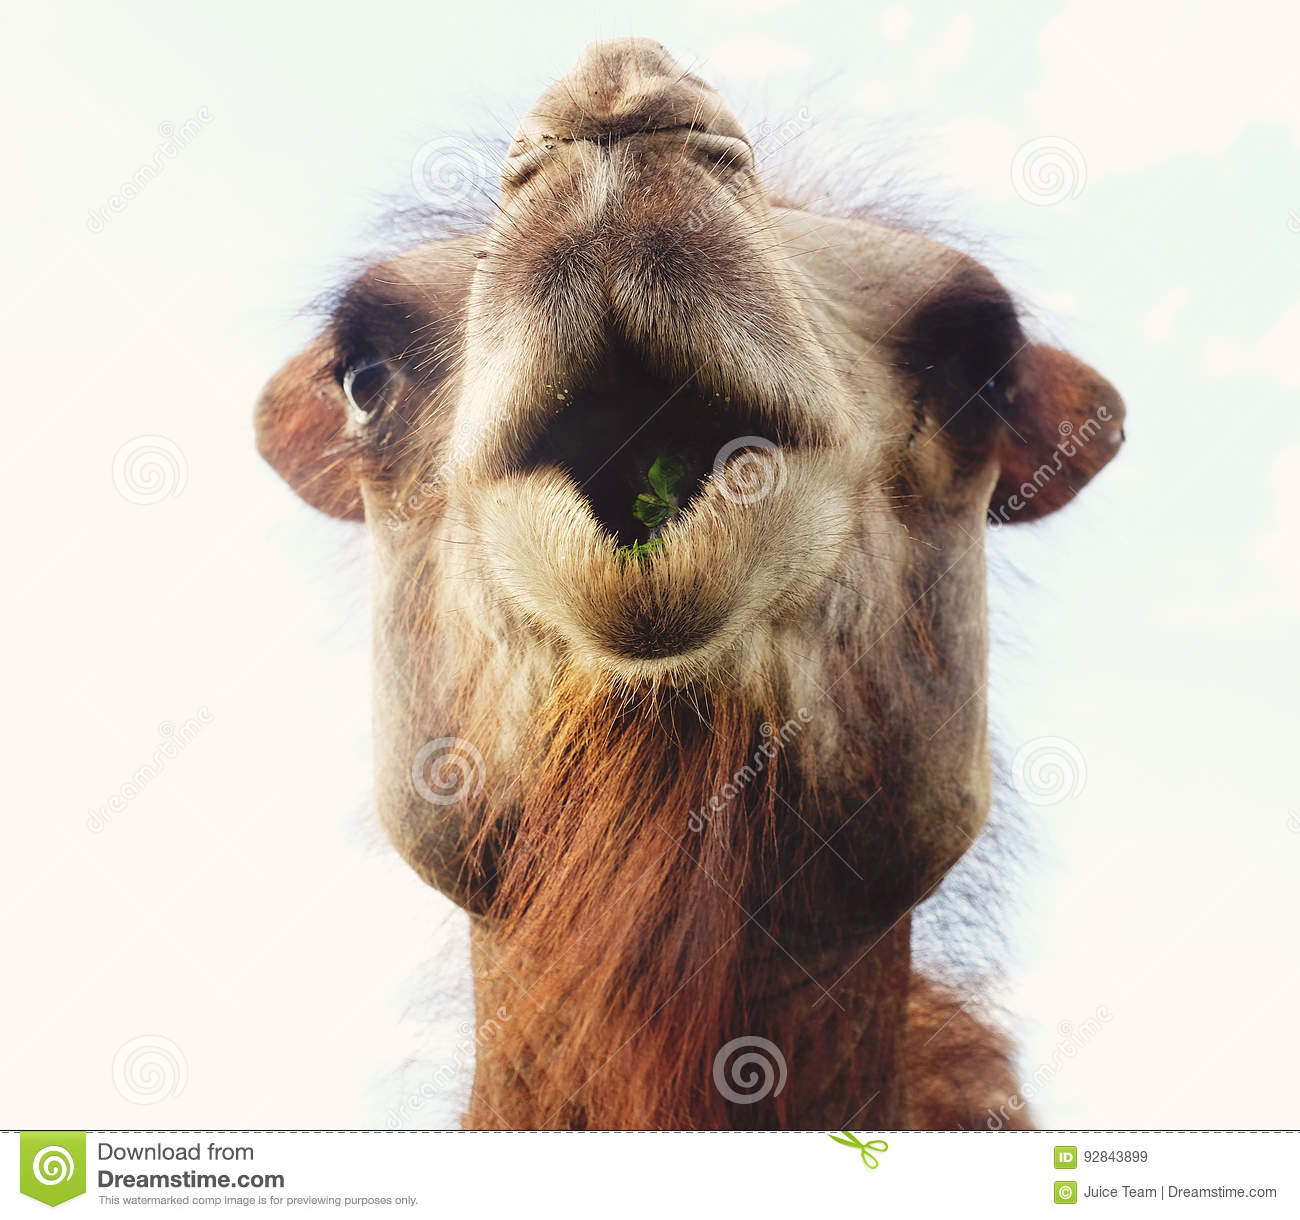 Download Head Of A Camel Against The Sky Stock Image - Image of nature, happy: 92843899